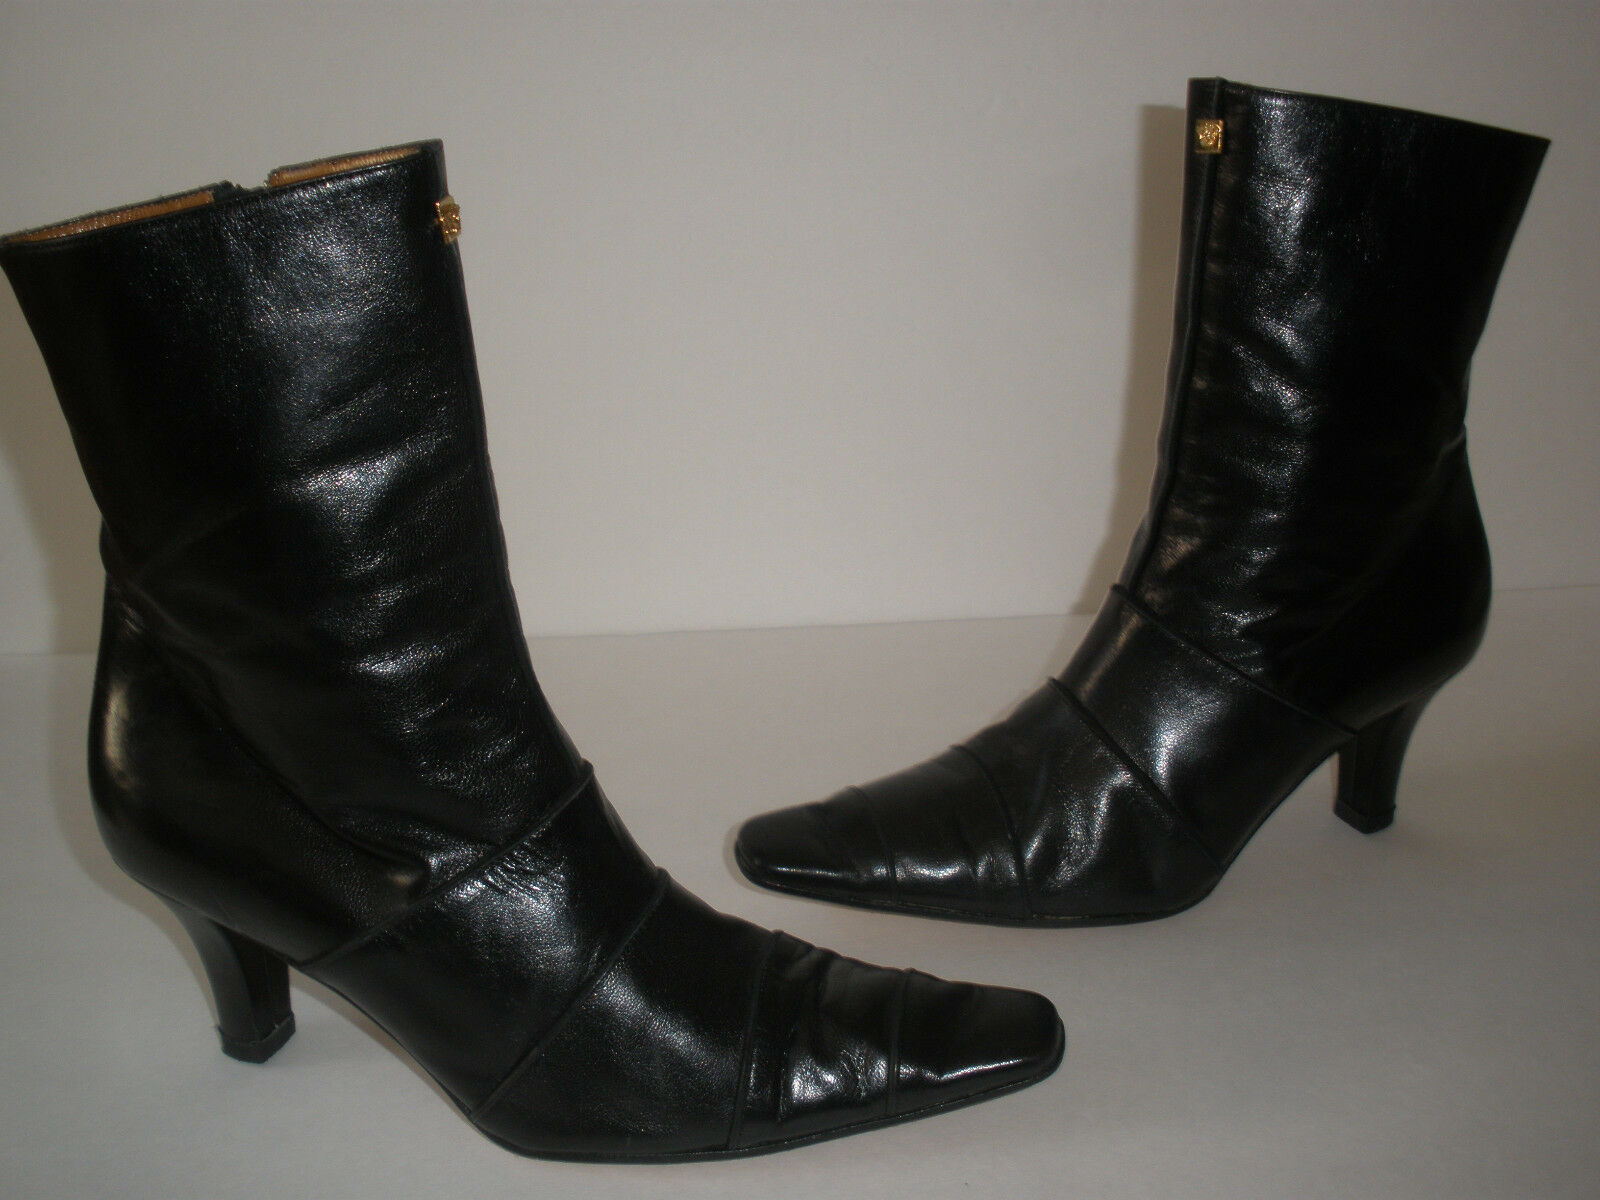 @ GIANNI VERSACE BLACK LEATHER BOOTIE US 5.5  EUR 35.5  HOT SEXY MADE IN ITALY